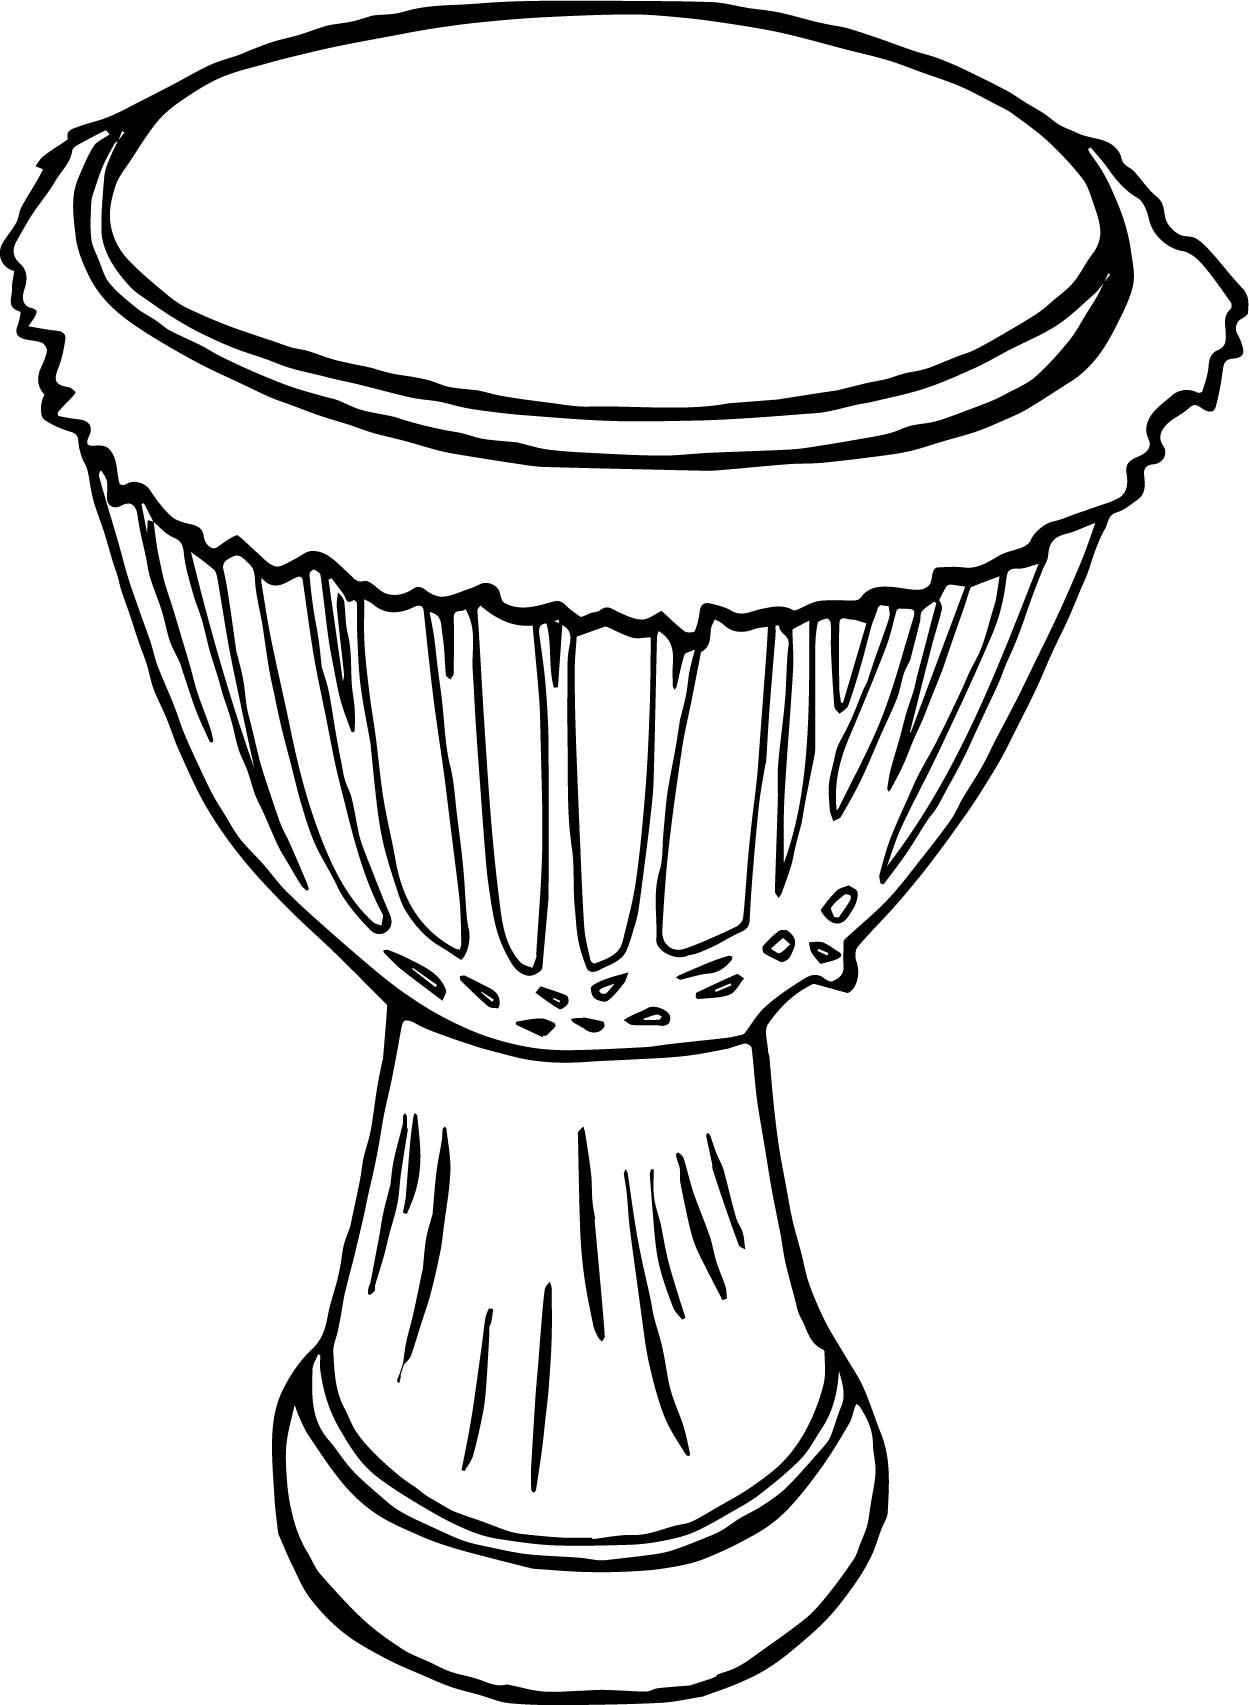 African Drum Coloring Page